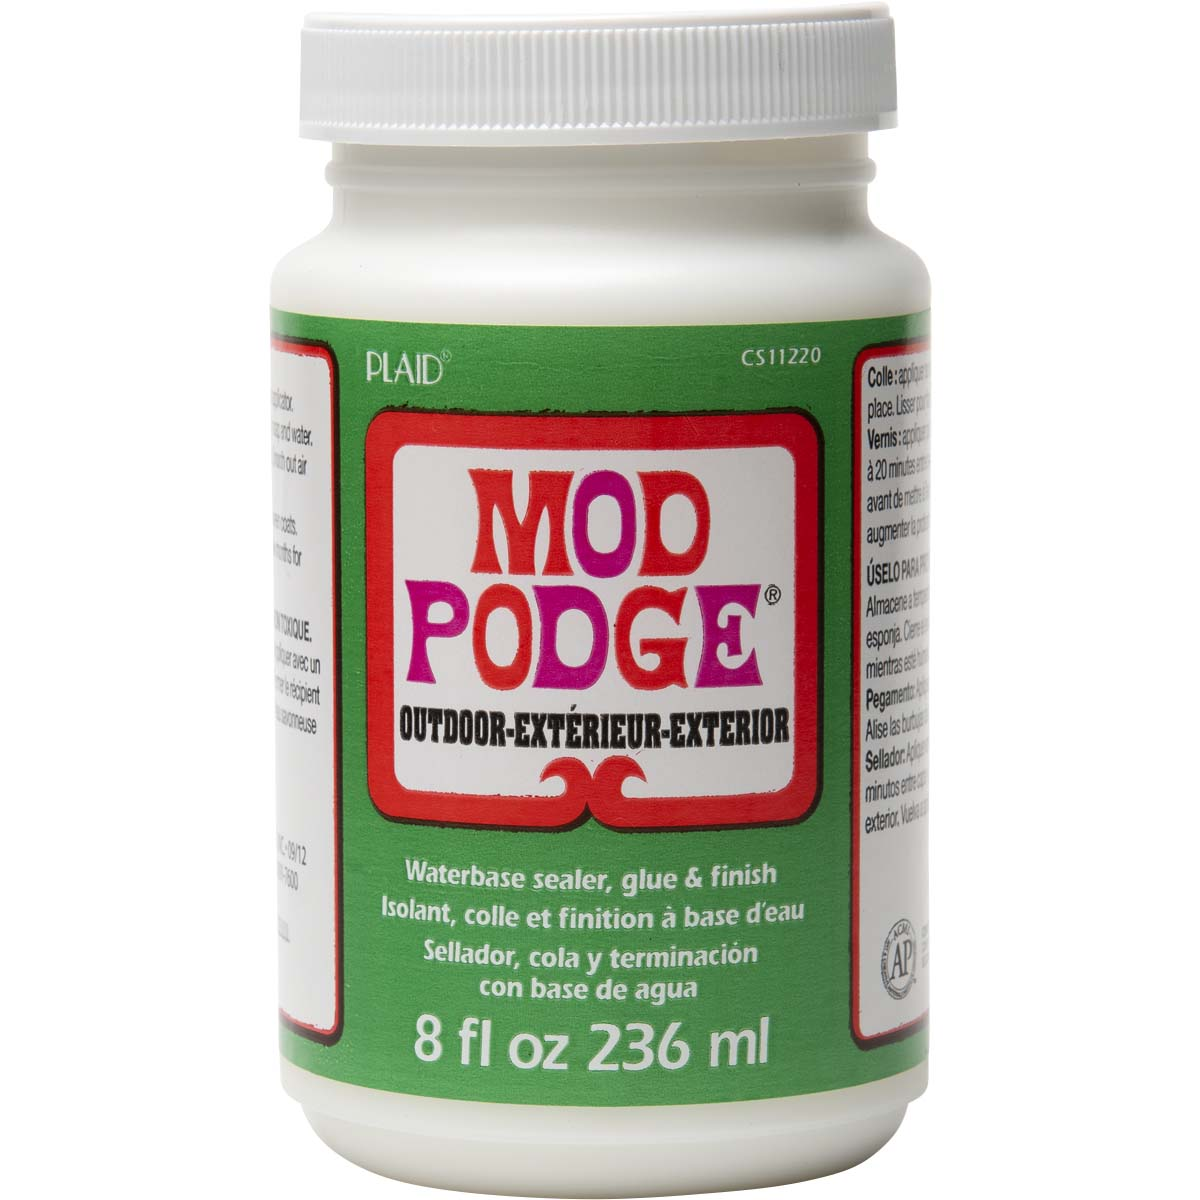 Mod Podge ® Outdoor, 8 oz. - CS11220